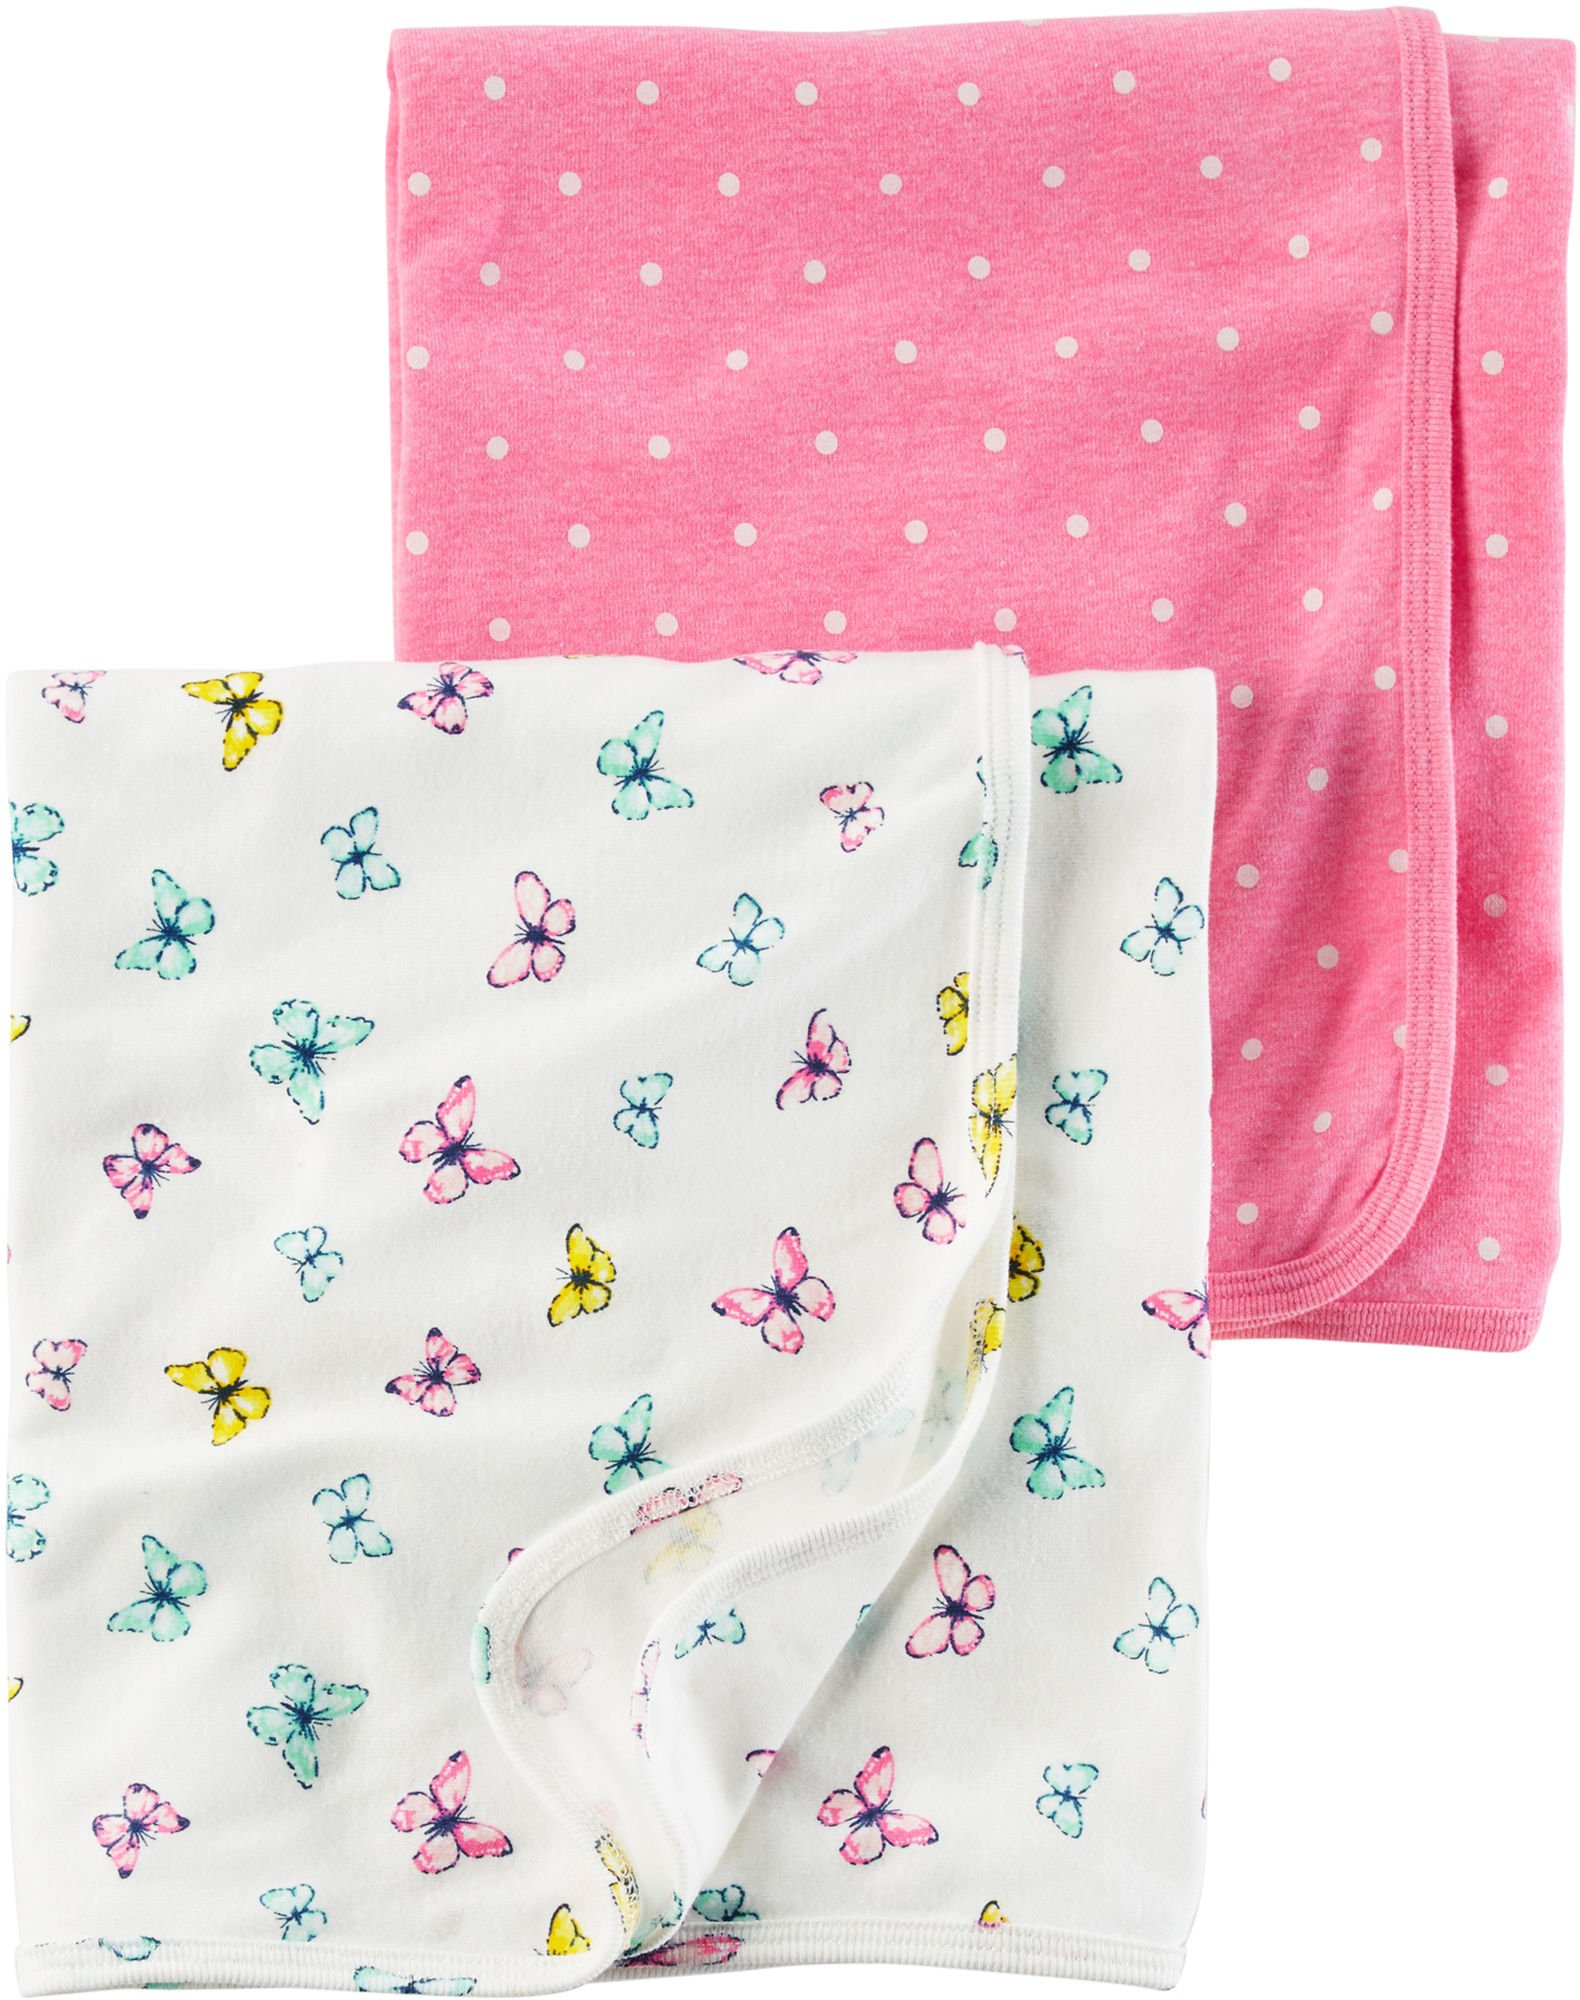 Amazon.com : Carters Baby Girls' Floral Swaddle Blanket